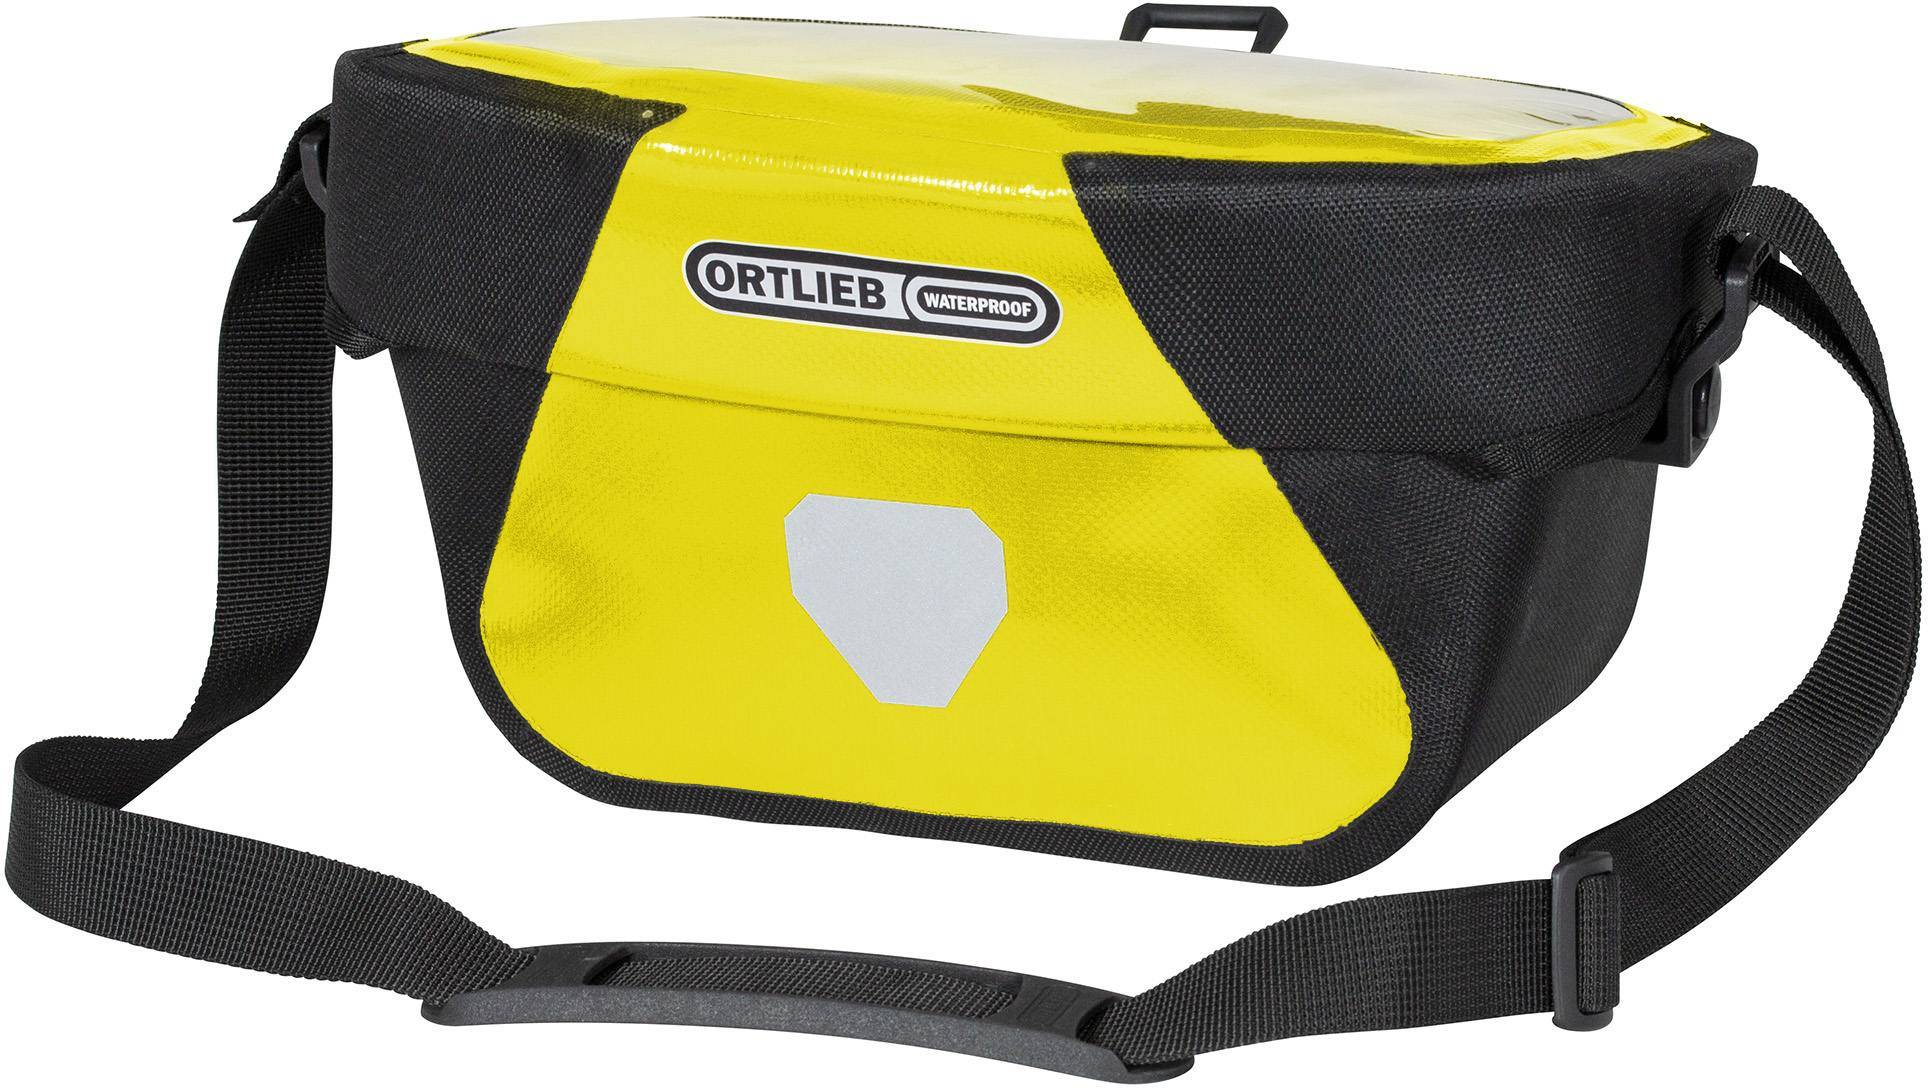 Ortlieb Ultimate 6 S Classic Keltainen